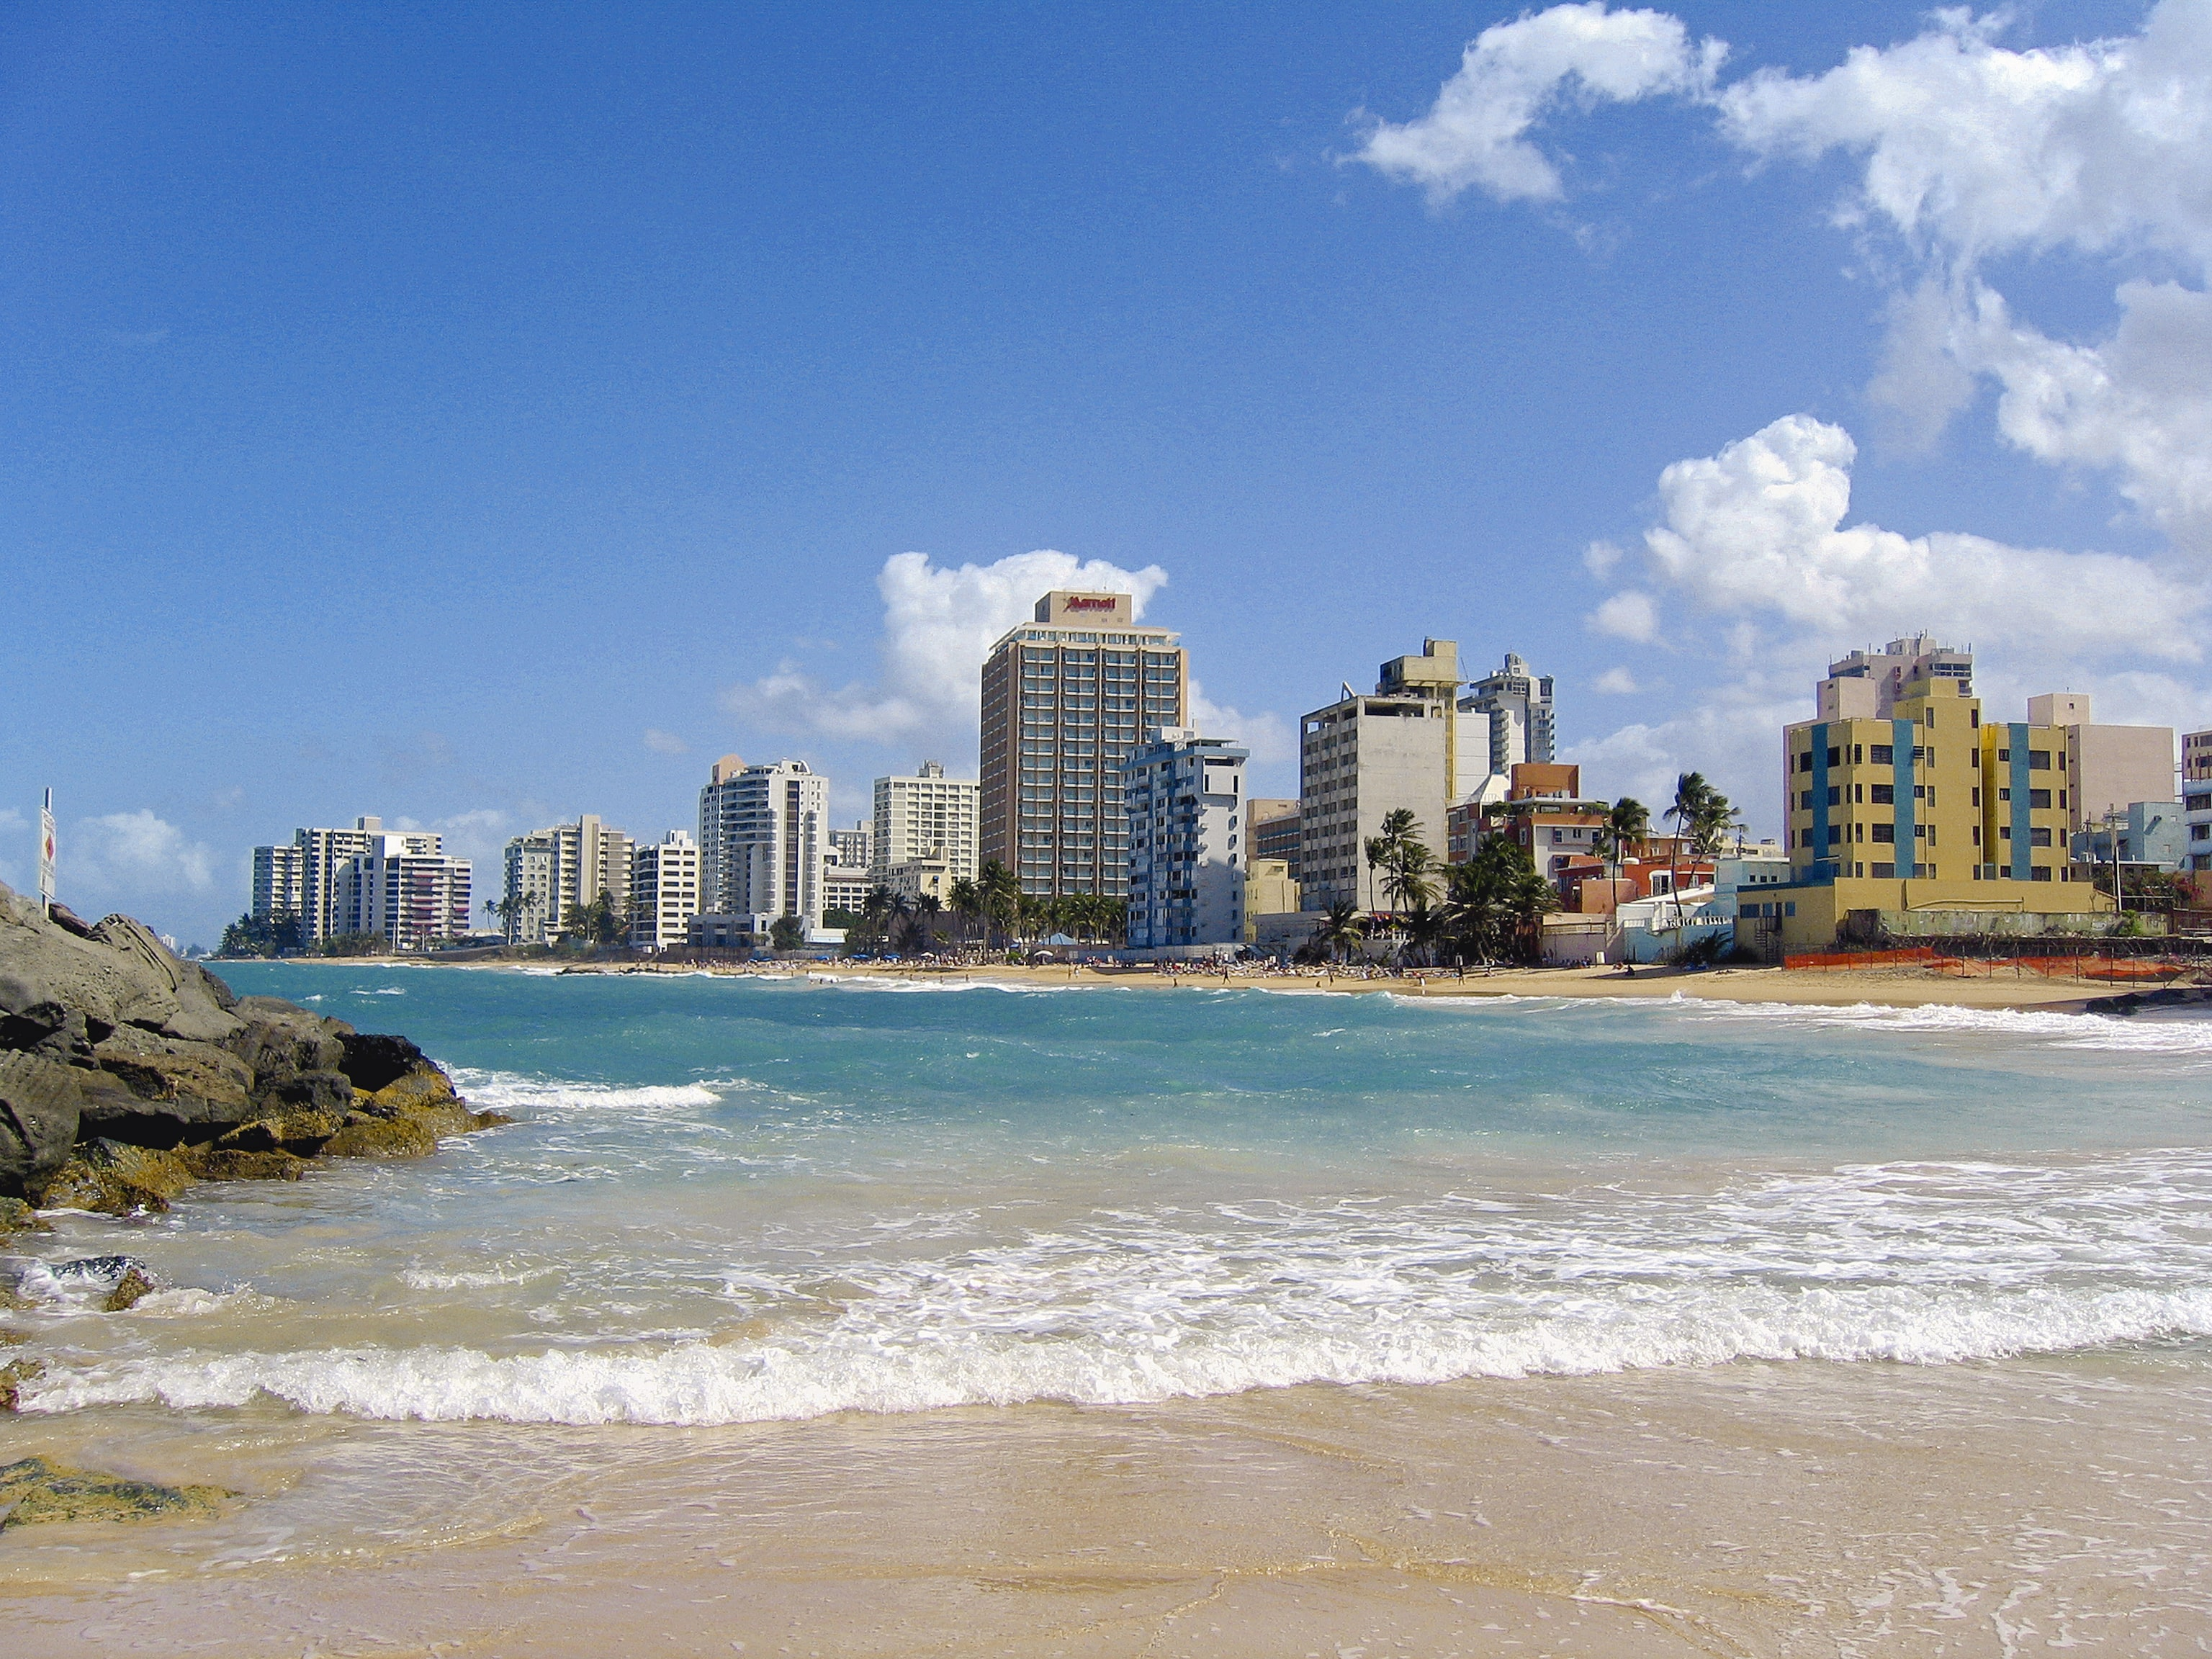 Going to the beach is one of the best activities in san juan puerto rico